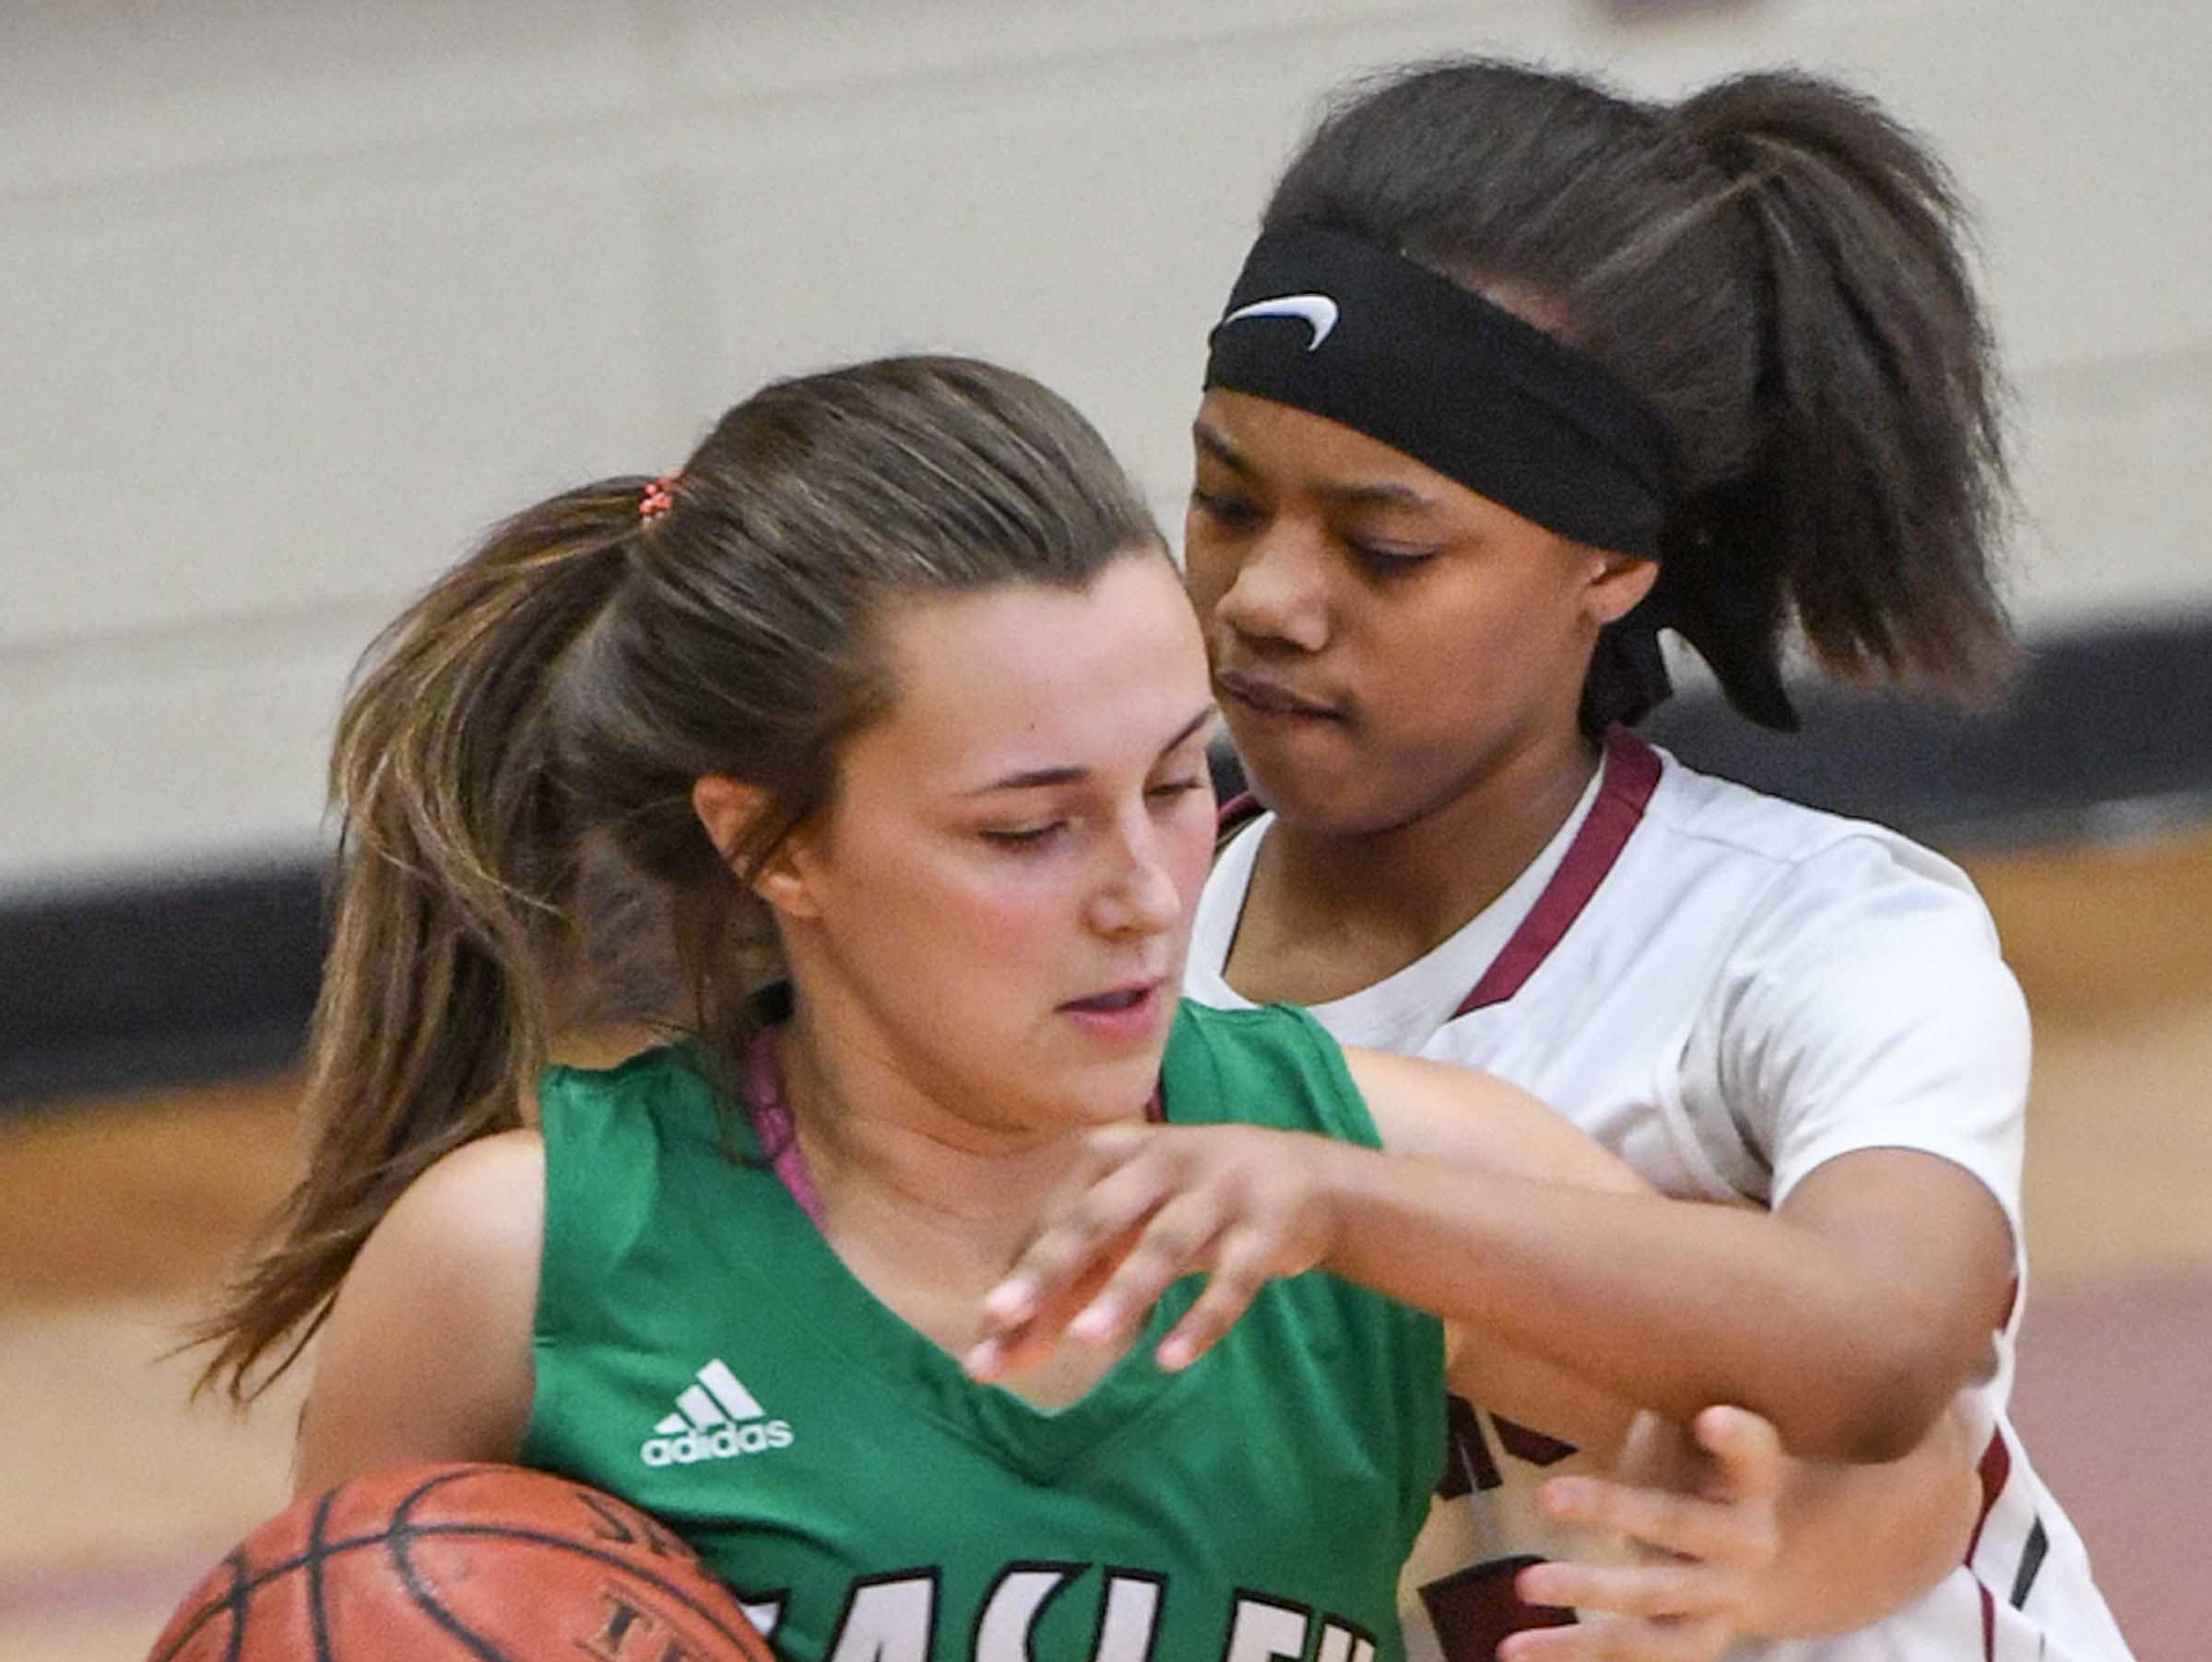 Easley senior Aubrey Lewis(10) is pressured by Westside sophomore Khia Pickens(13) during the second quarter at Westside High School in Anderson on Friday.